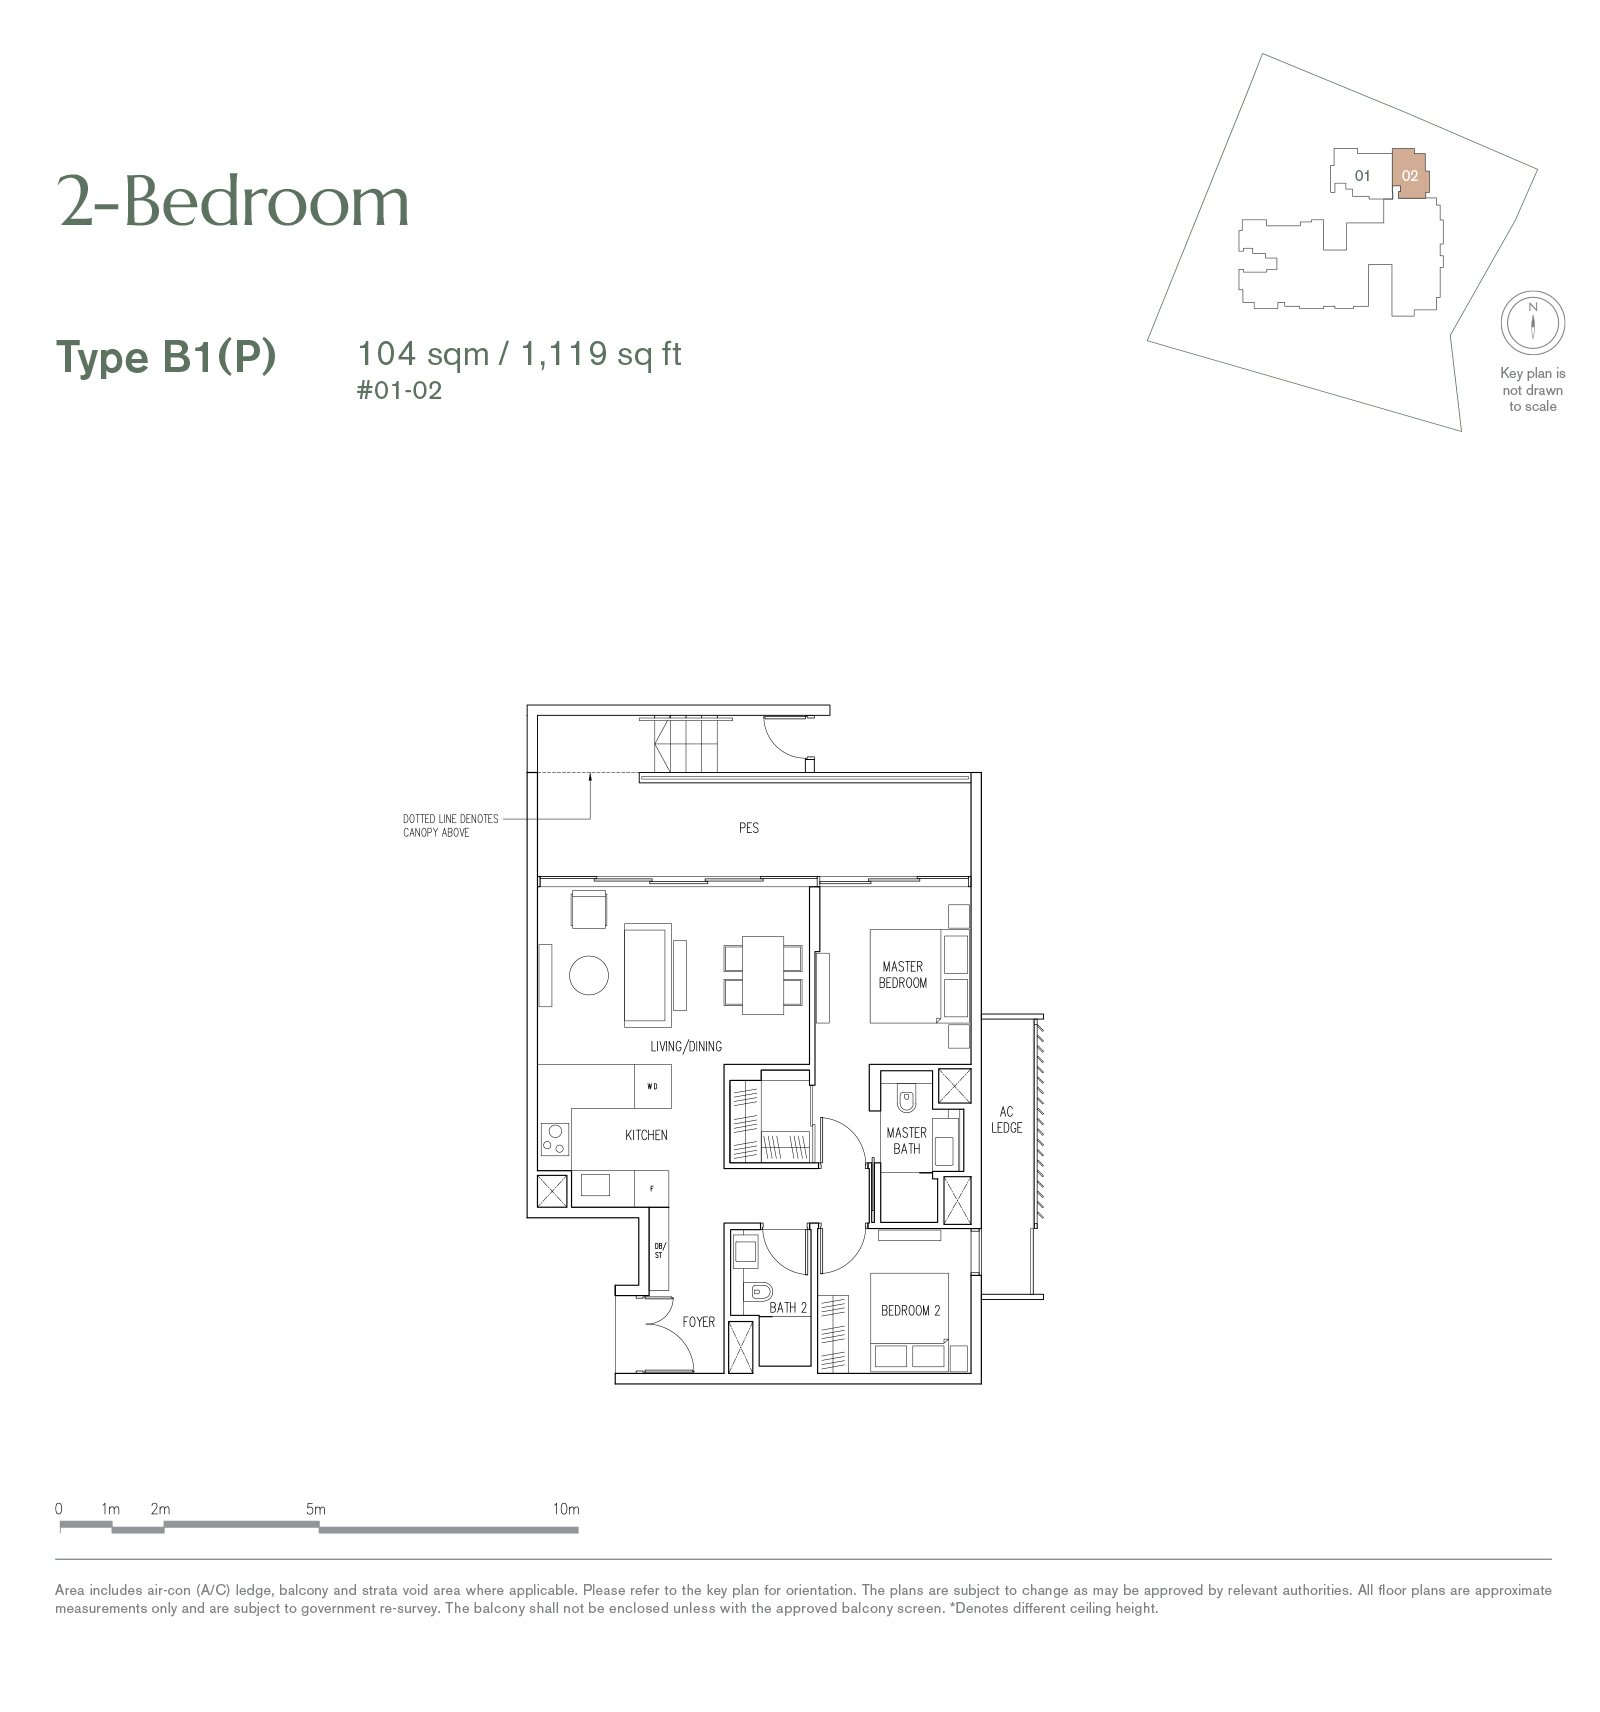 19 Nassim 纳森山公寓 floor plan 2-bedroom-B1P